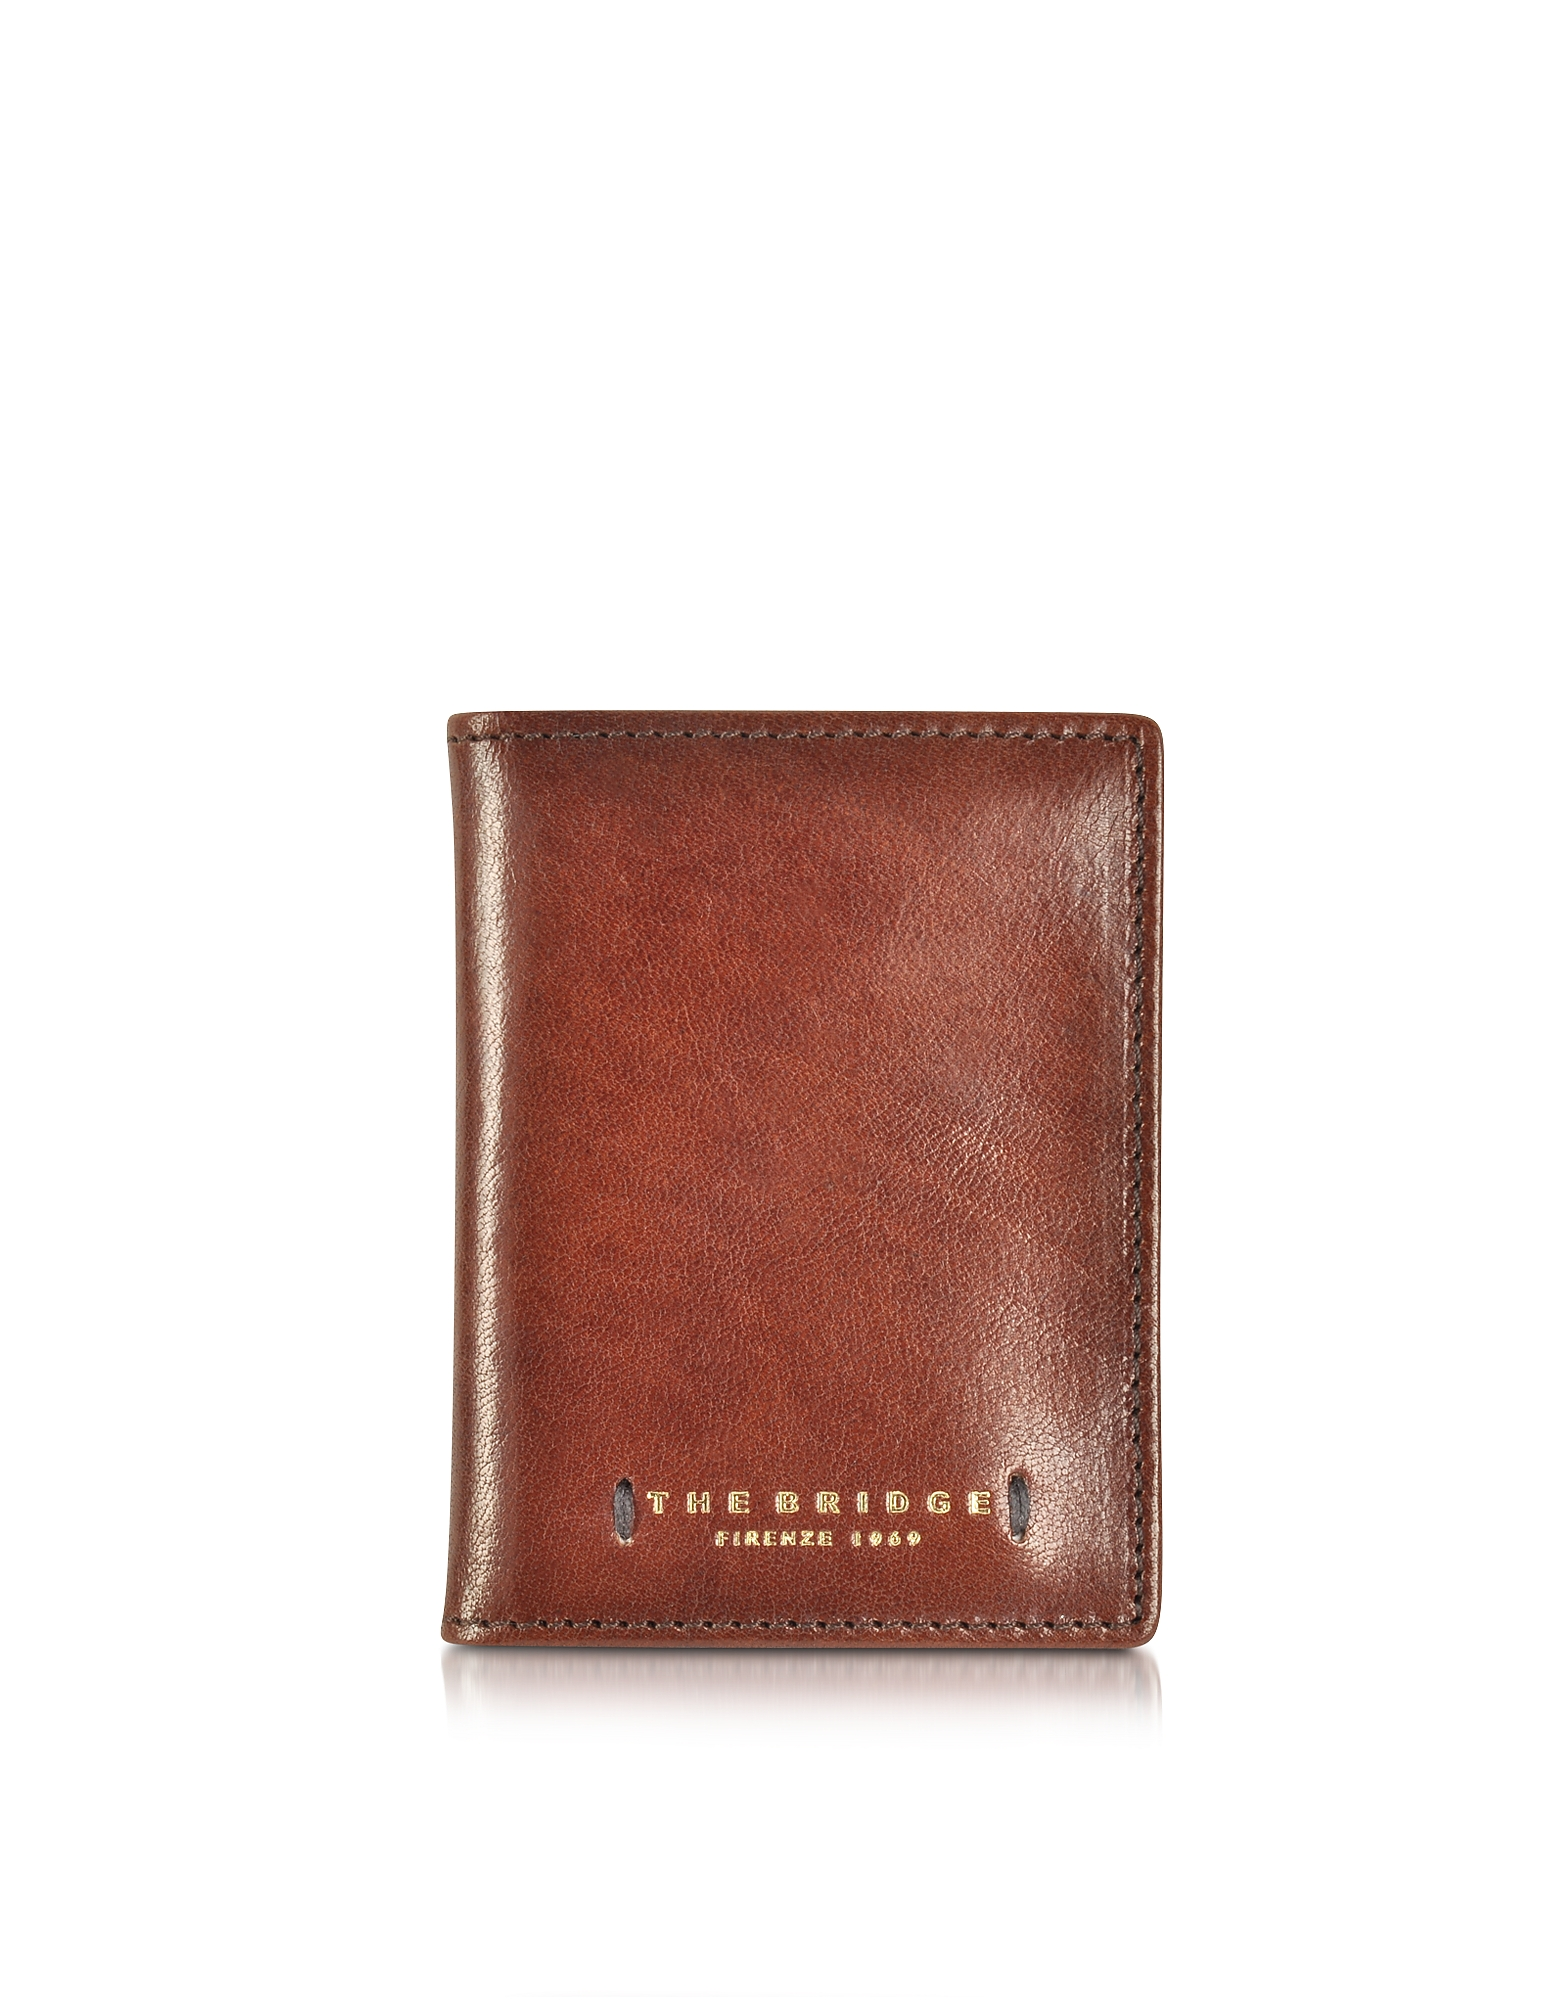 The Bridge Small Leather Goods, Dark Brown Leather Card Holder